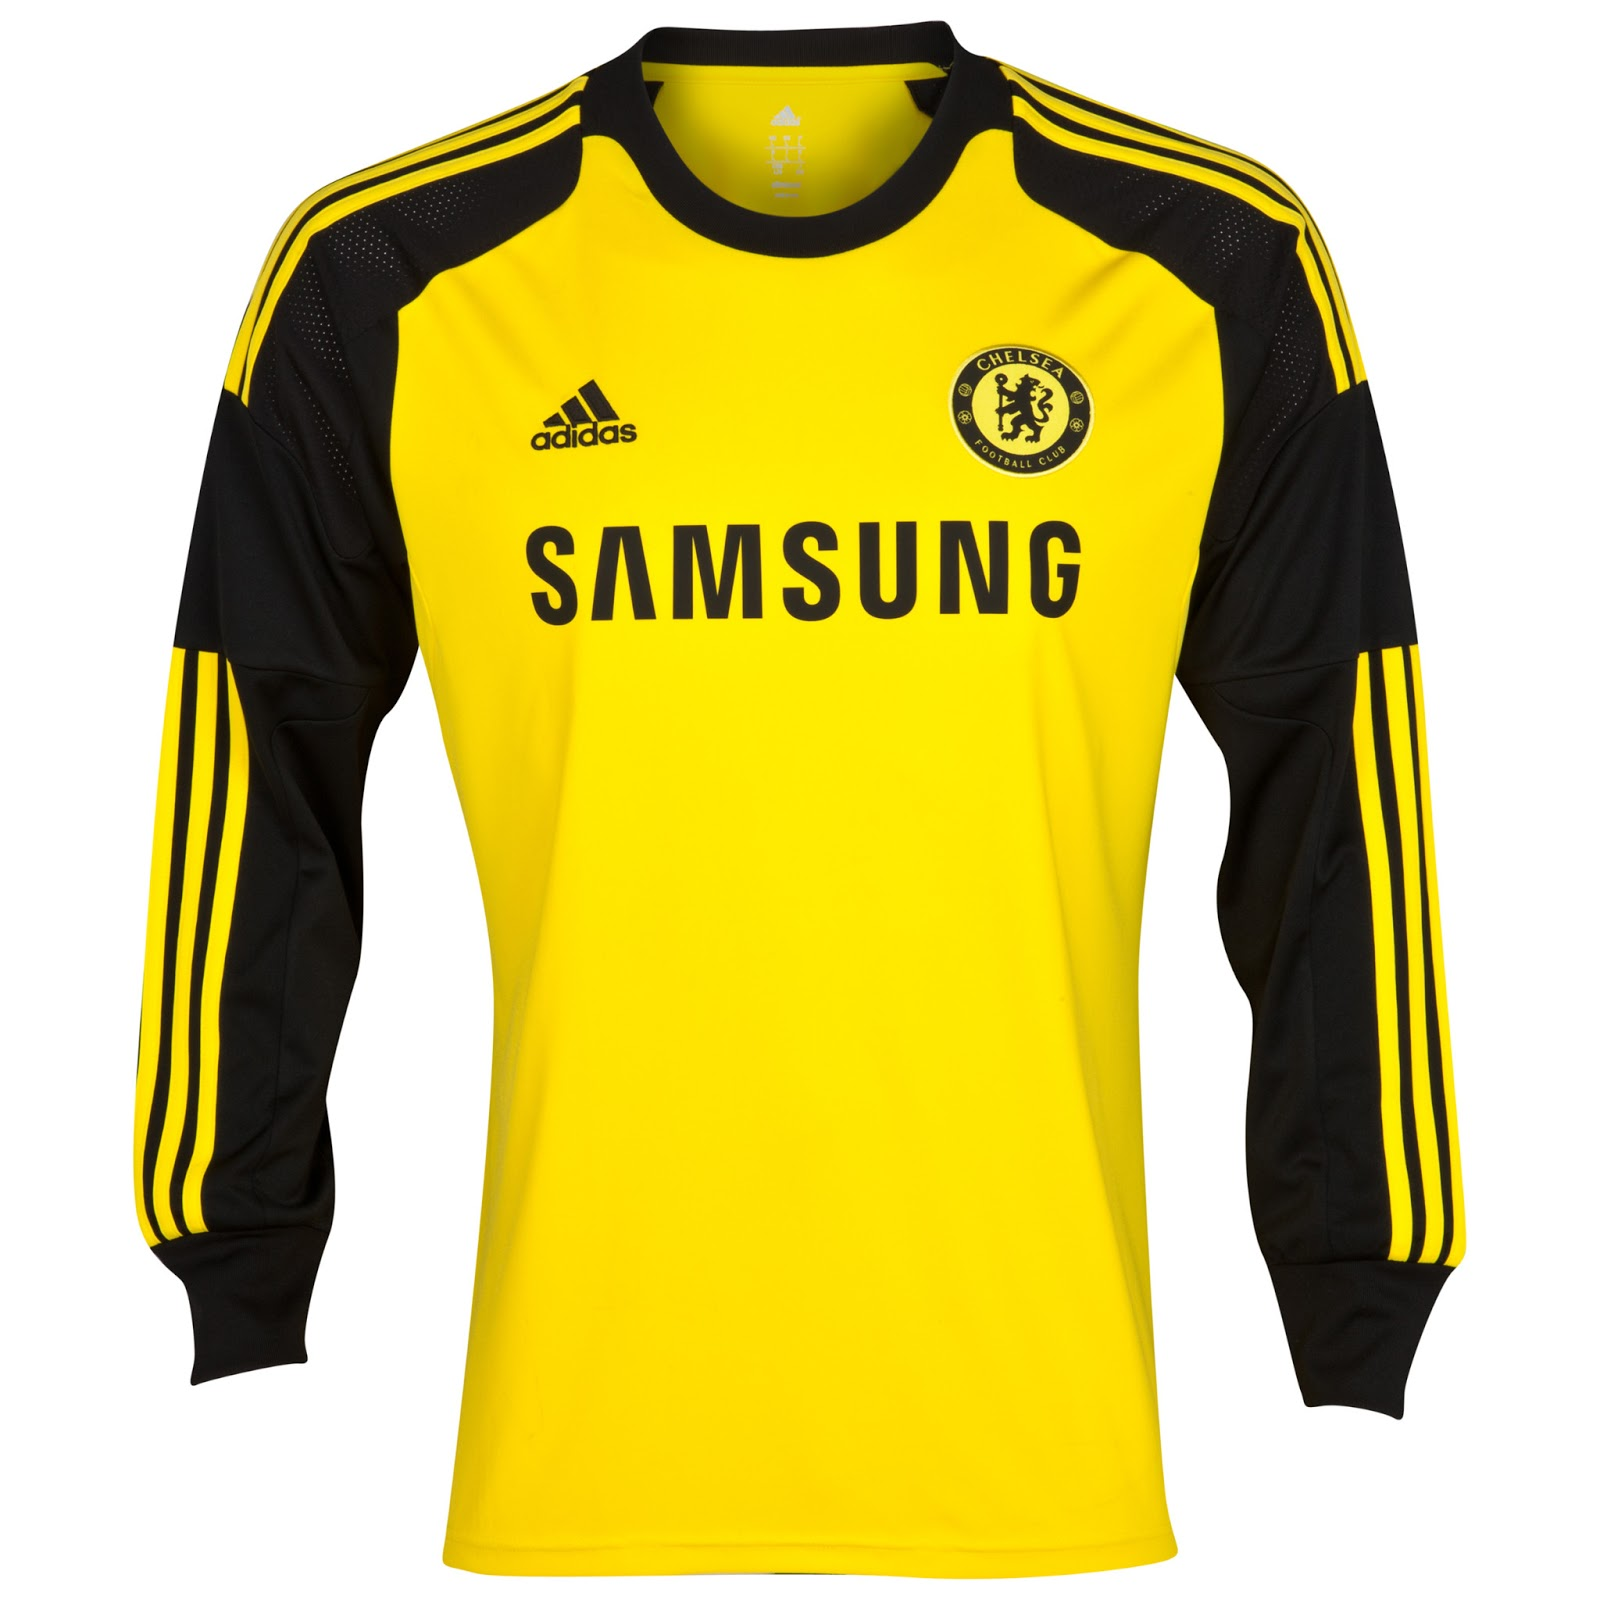 Chelsea 13 14 2013 14 Home Kit Officially Released